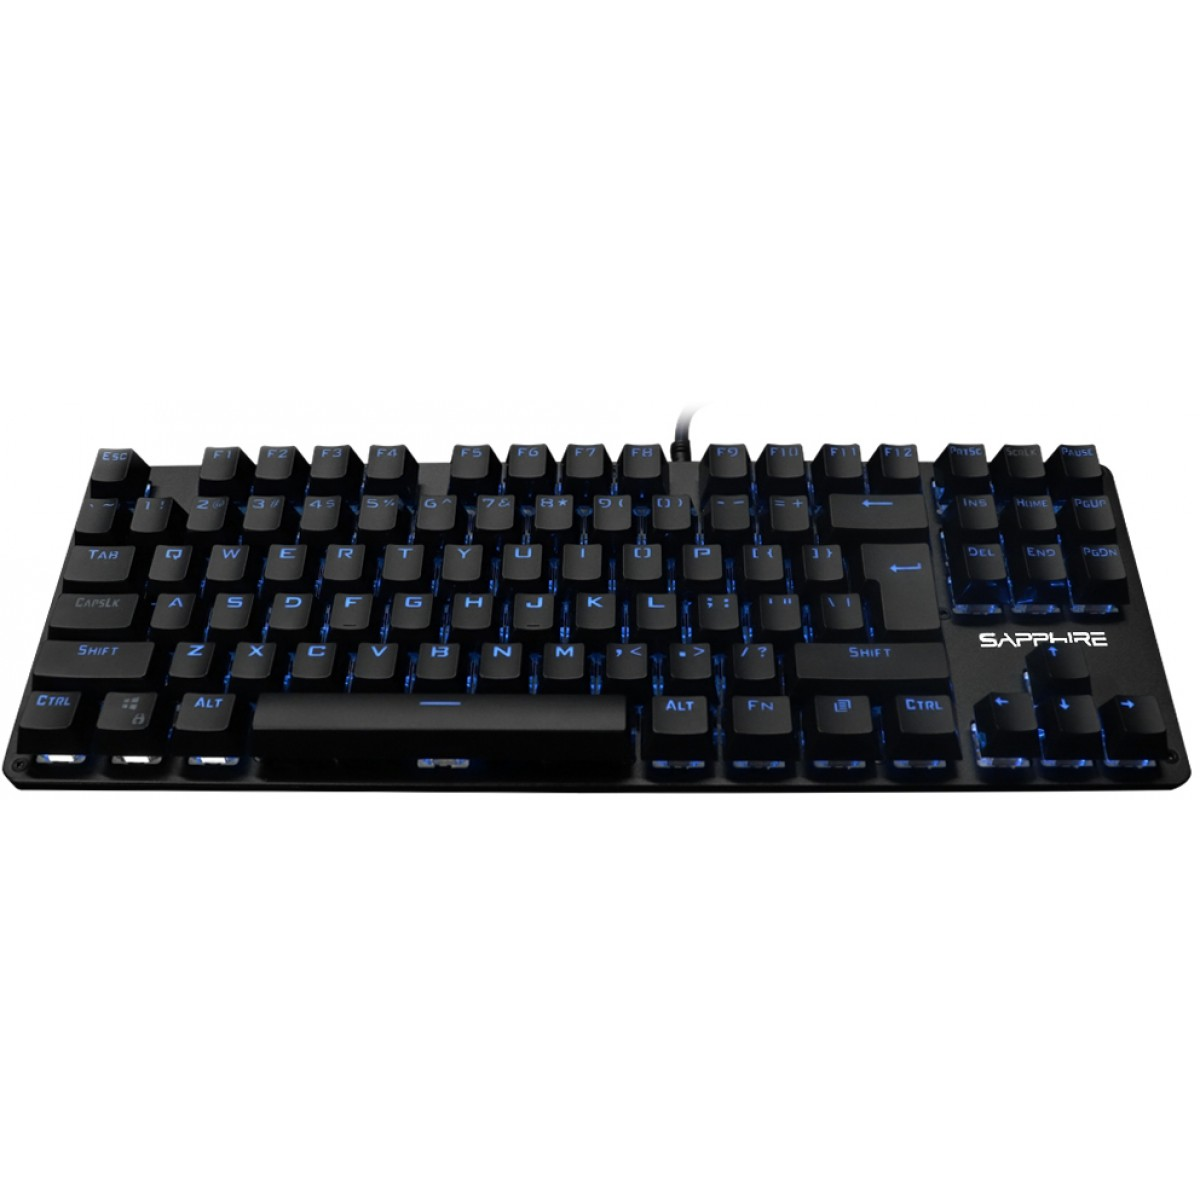 Teclado Gamer Mecanico Sapphire SP12 Preto Led Azul Switch Brown - Open box